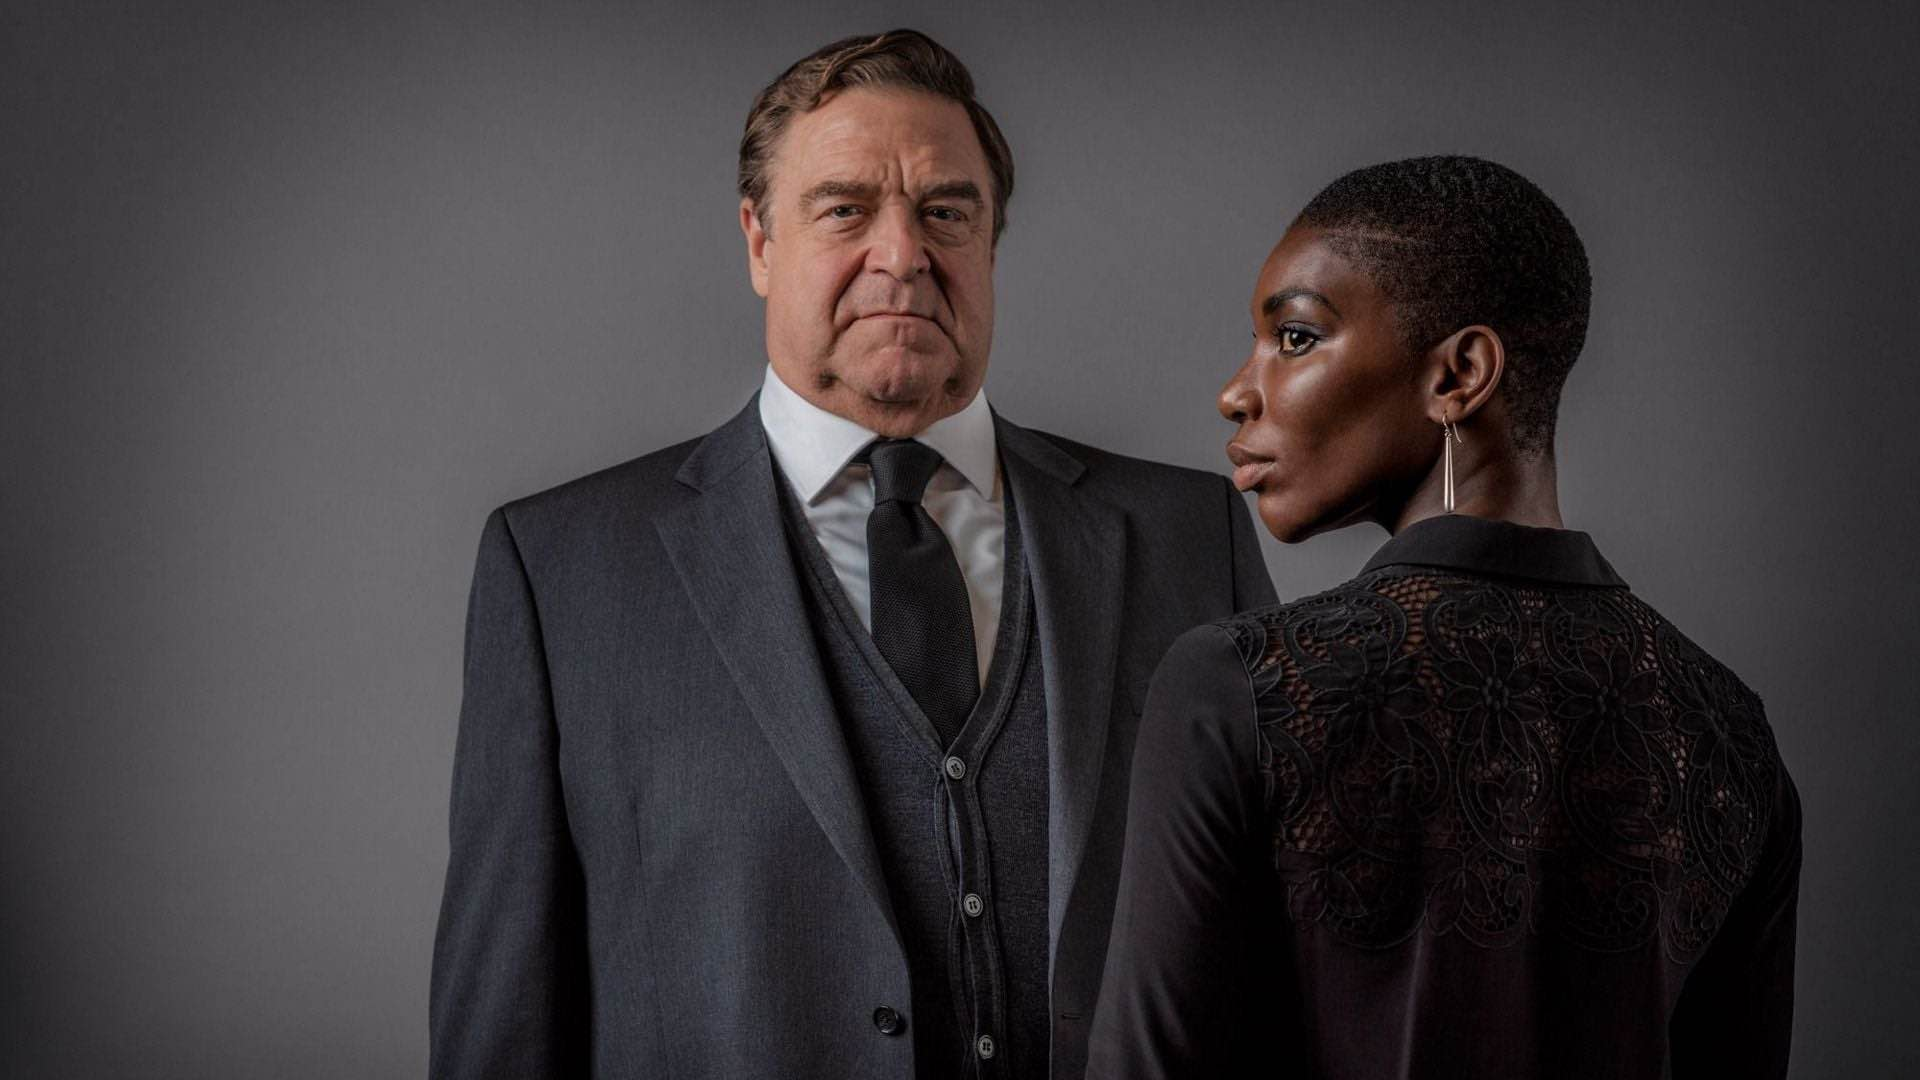 Having already aired in the UK from September to October 2018, 'Black Earth Rising' has received an encouraging reception